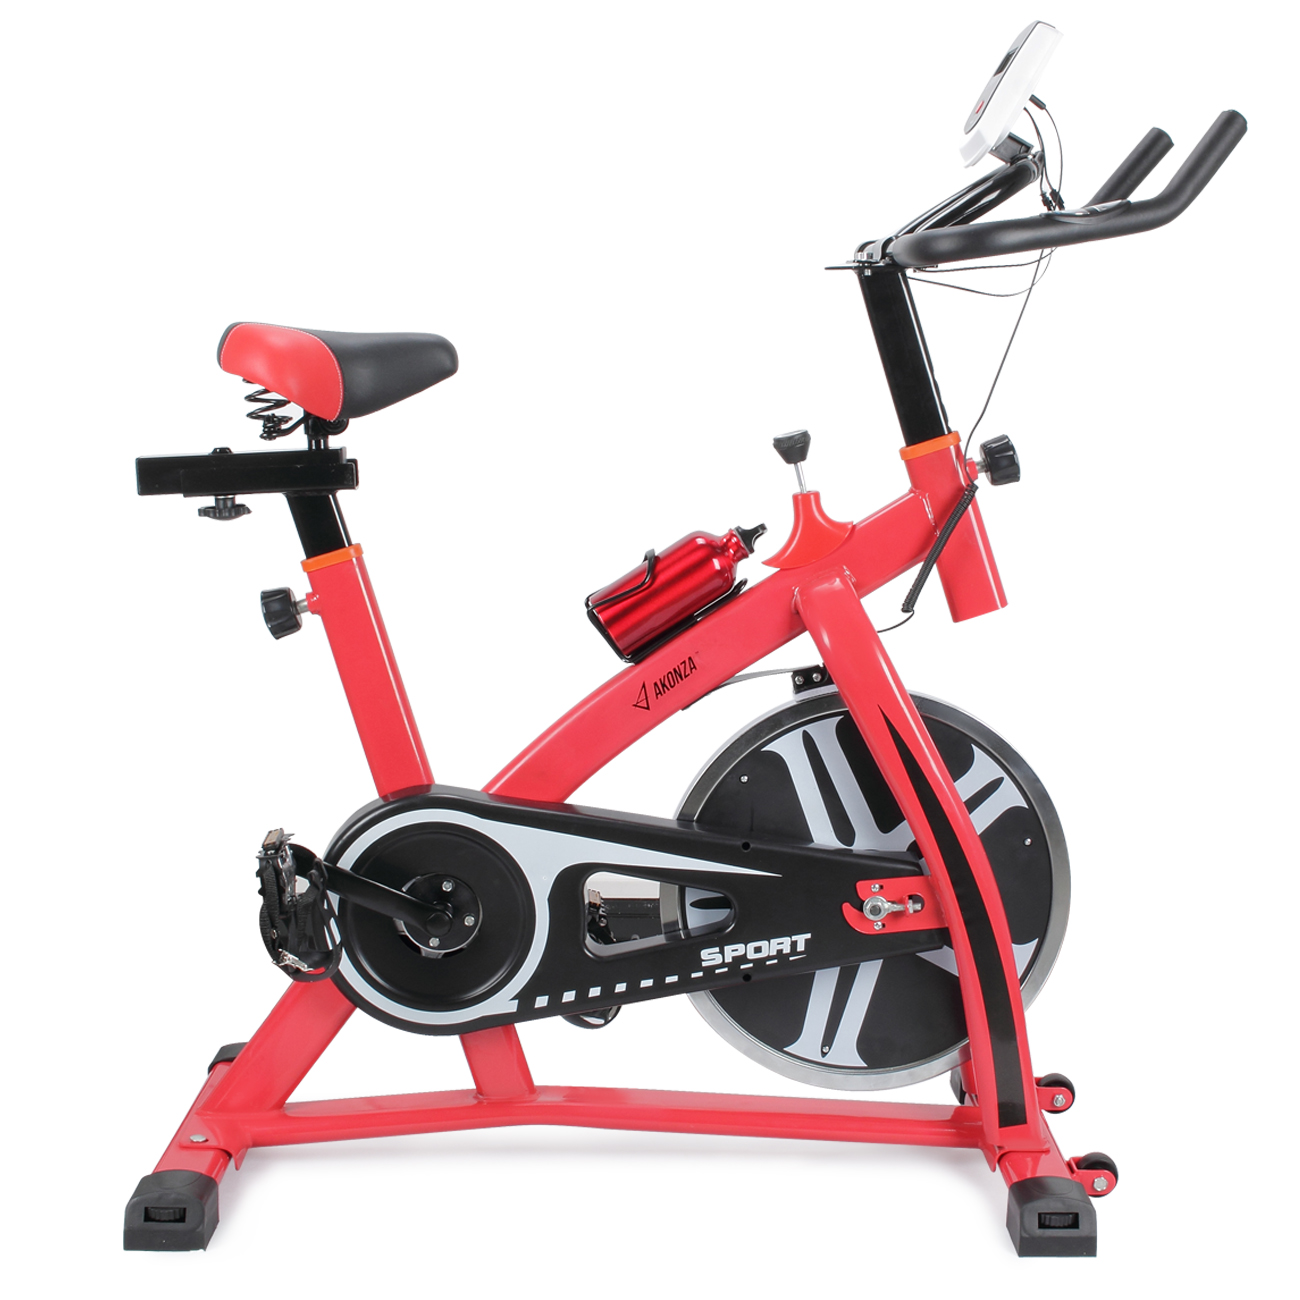 Akonza Stationary Exercise LED Display Cycling Bicycle Heart Pulse Trainer Bike w/ Water Bottle Holder, Red